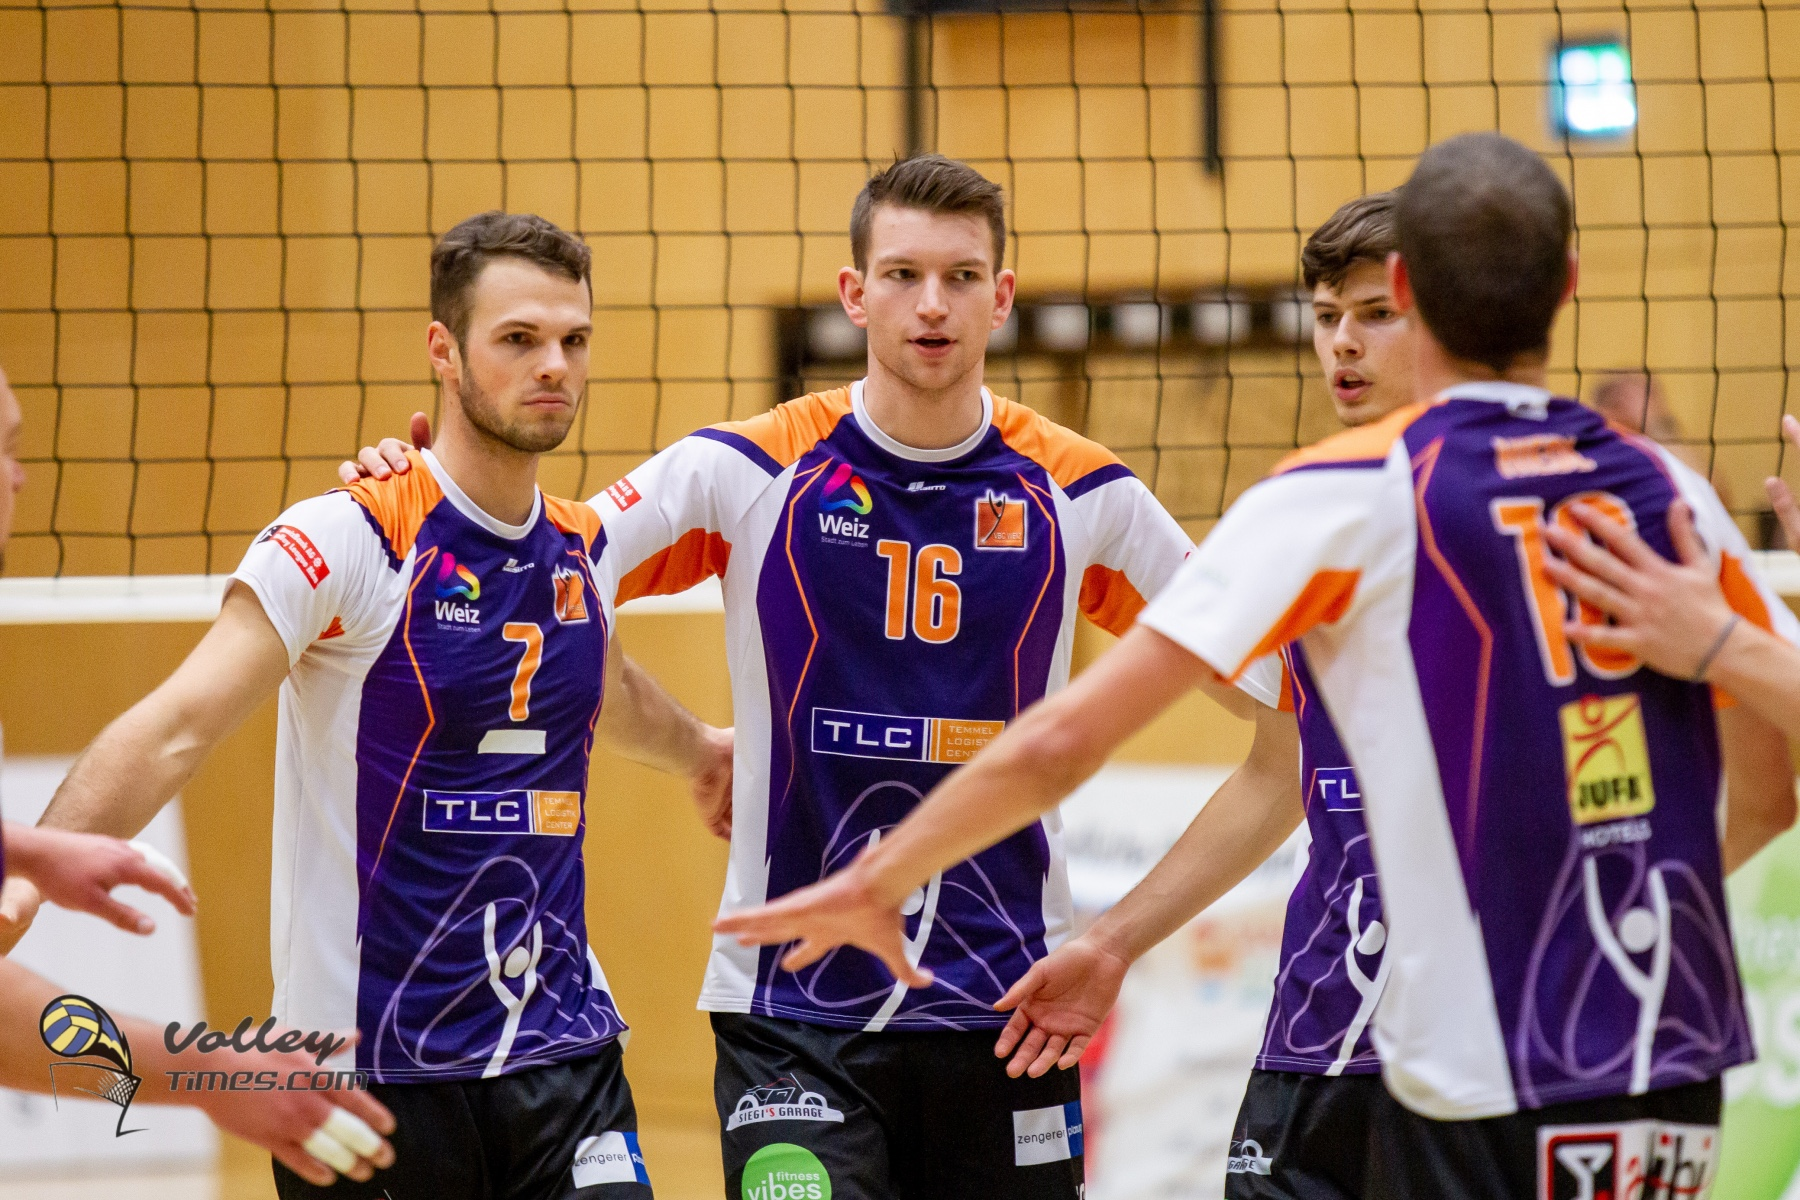 Austria: Three points for still undefeated Waldviertel and Amstetten. A great Weiz defeats Sokol at tie break.